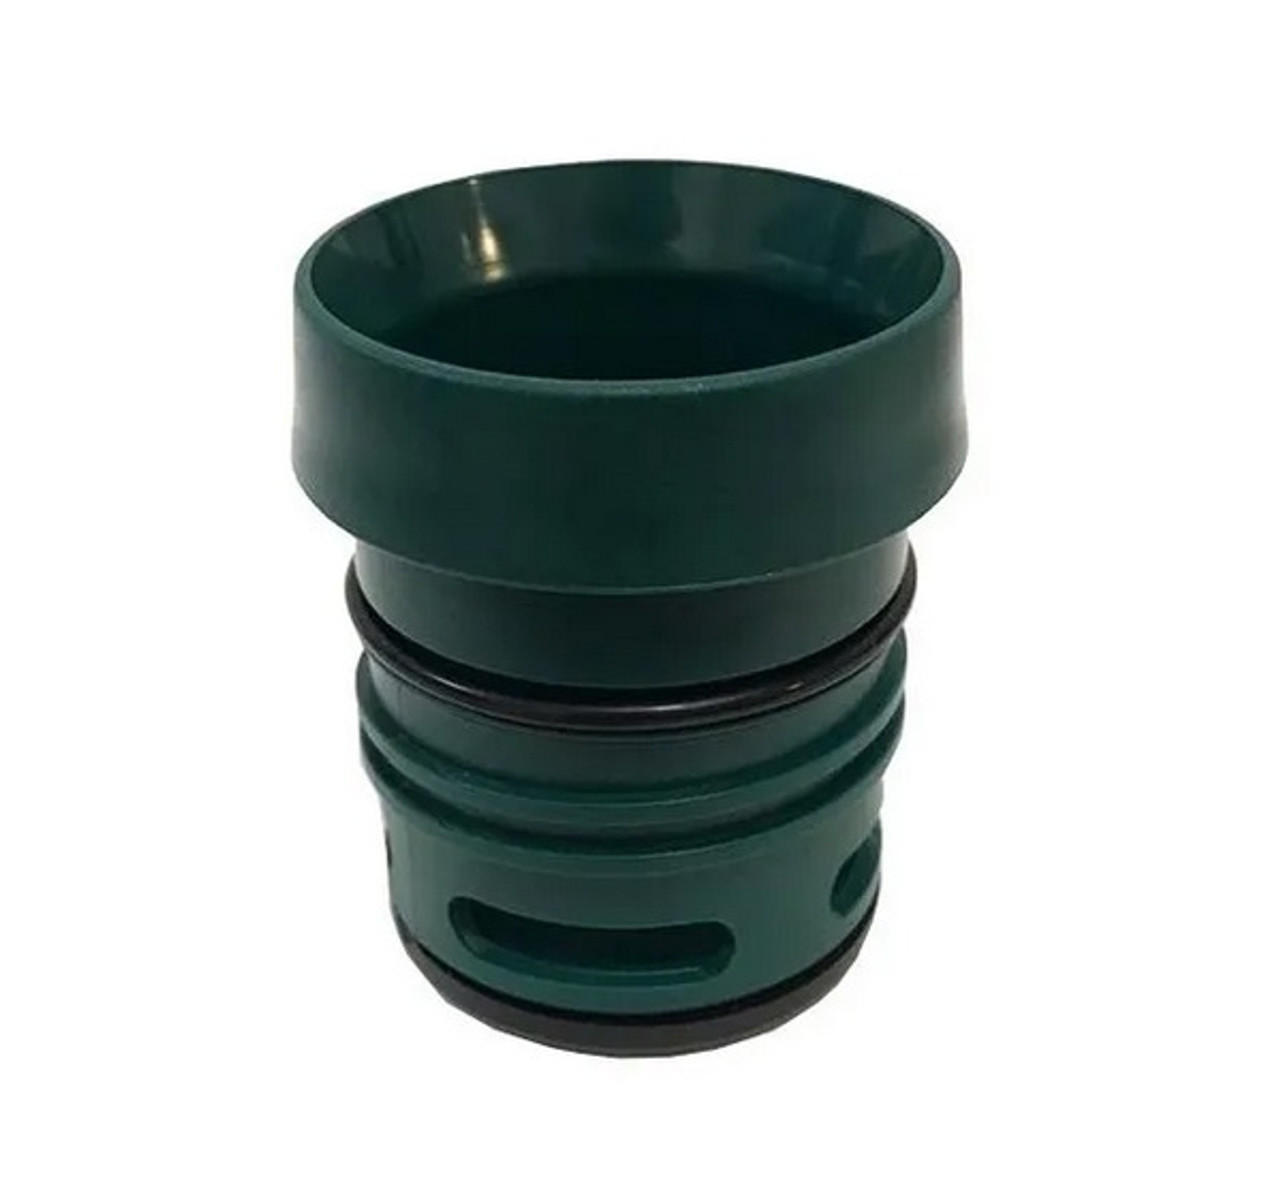 Parts replacement stanley thermos Stanley Thermos